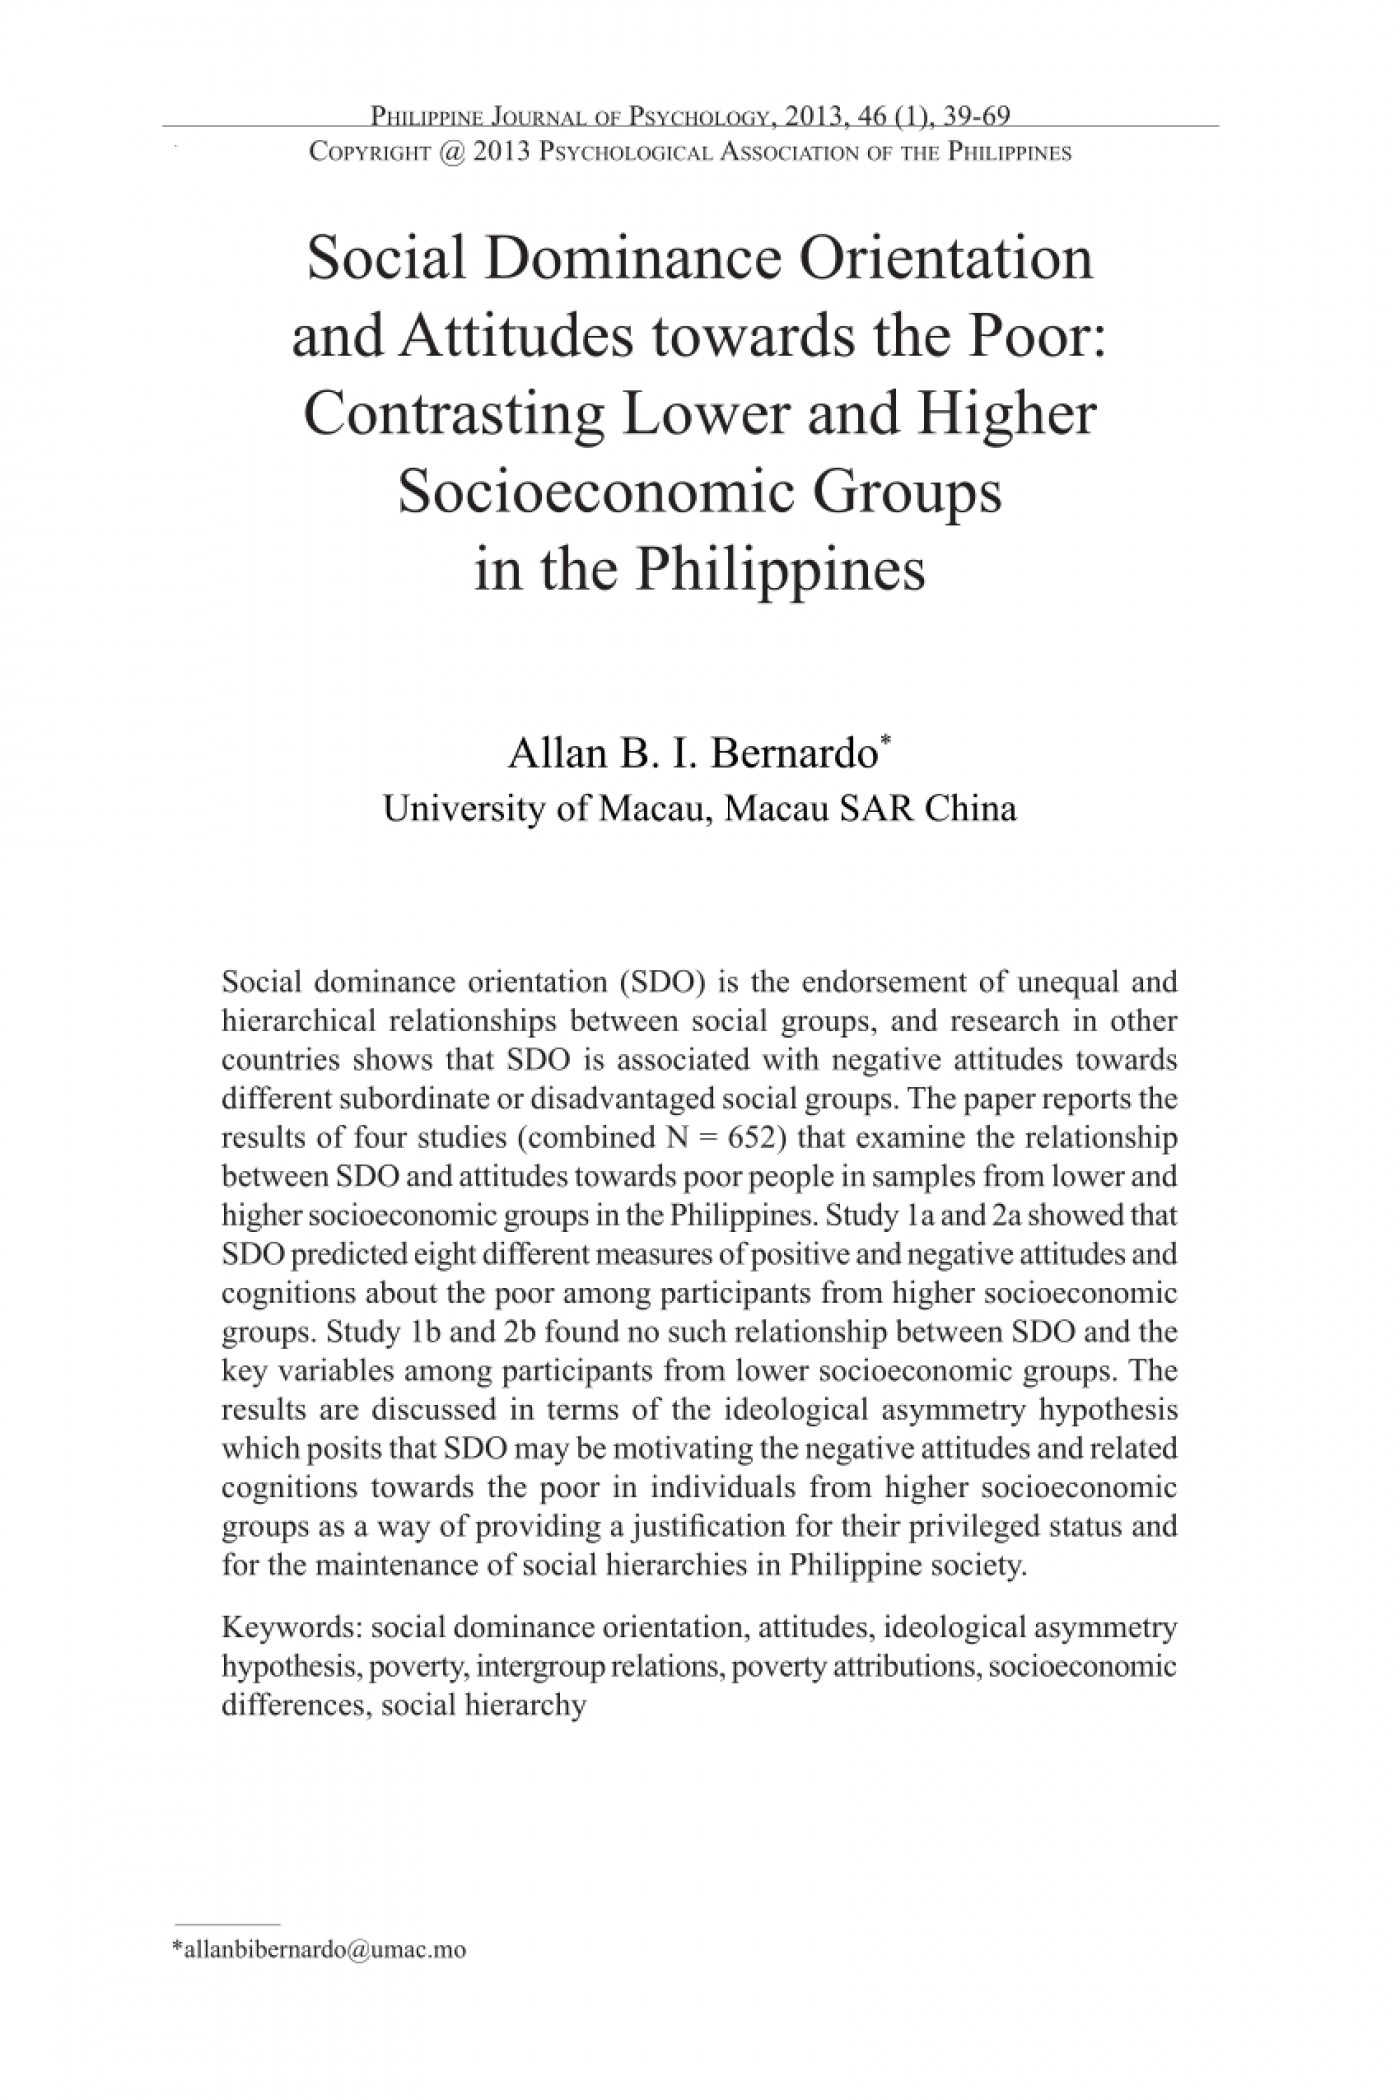 009 Research Paper Largepreview Poverty In The Philippines Remarkable Abstract 1400